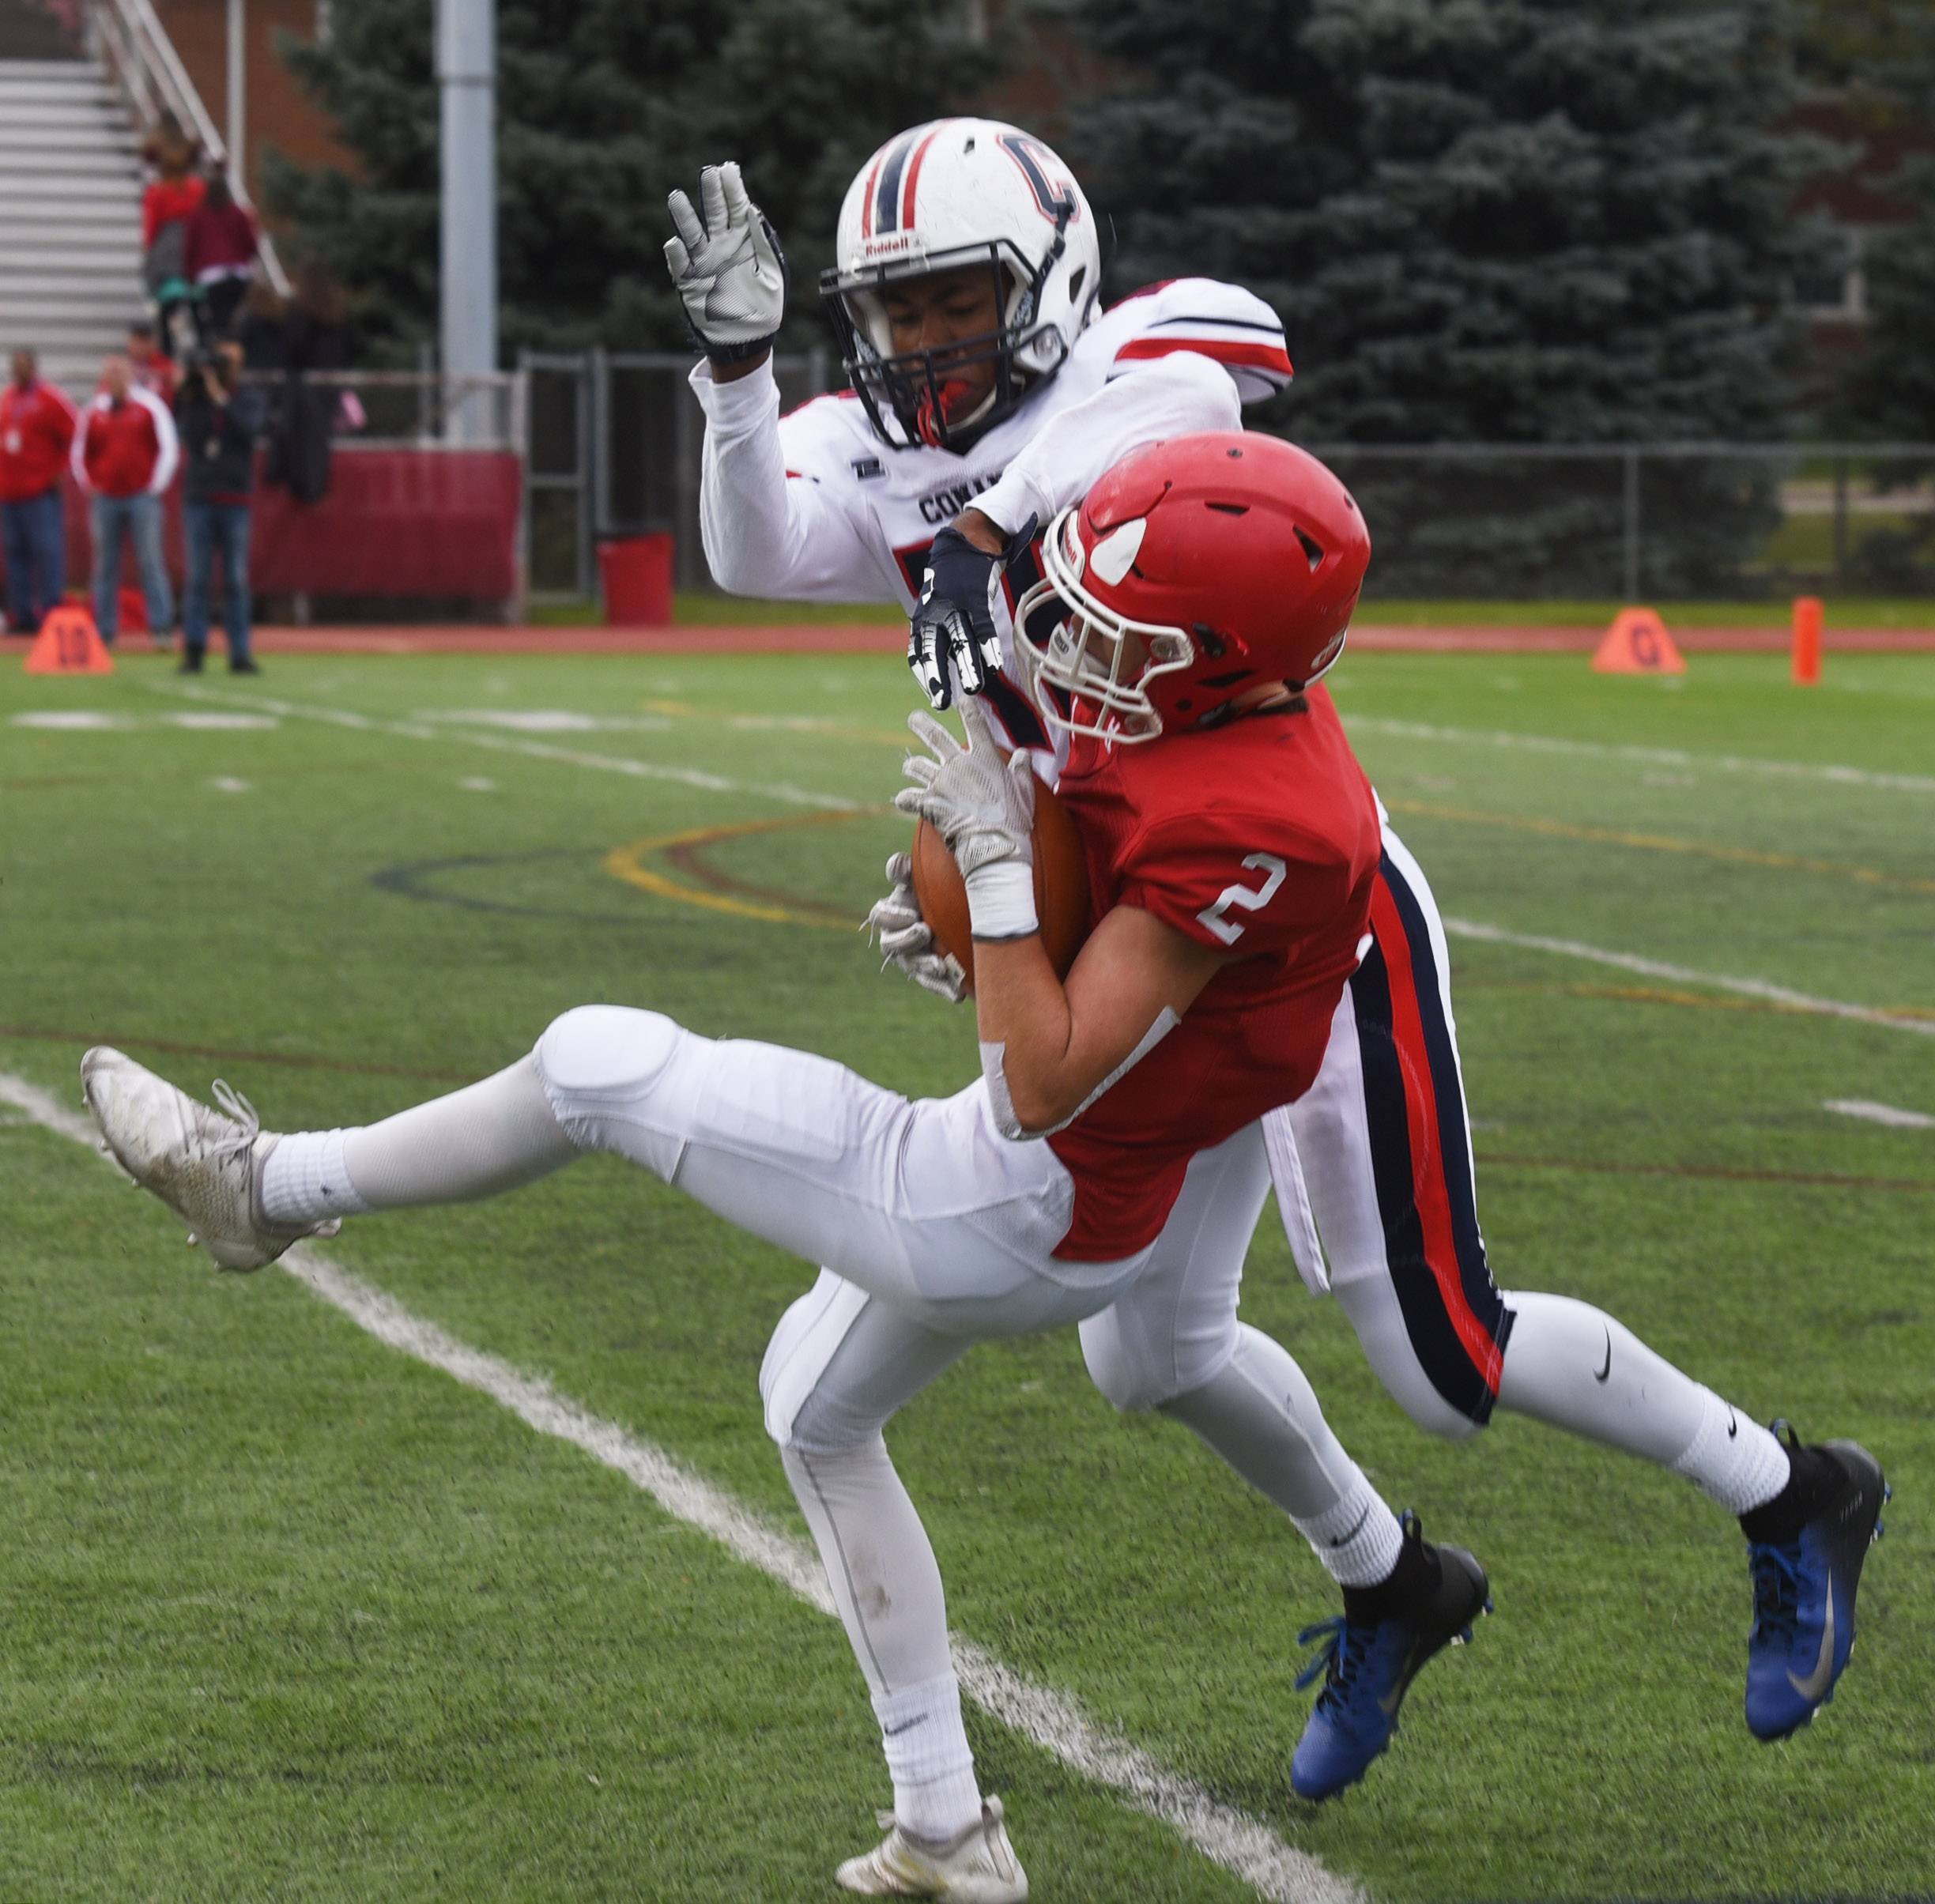 Hinsdale Central's Nick Beaulieu catches a pass as Conant's Ronald Williams defends during Saturday's Class 8A playoff game in Hinsdale.